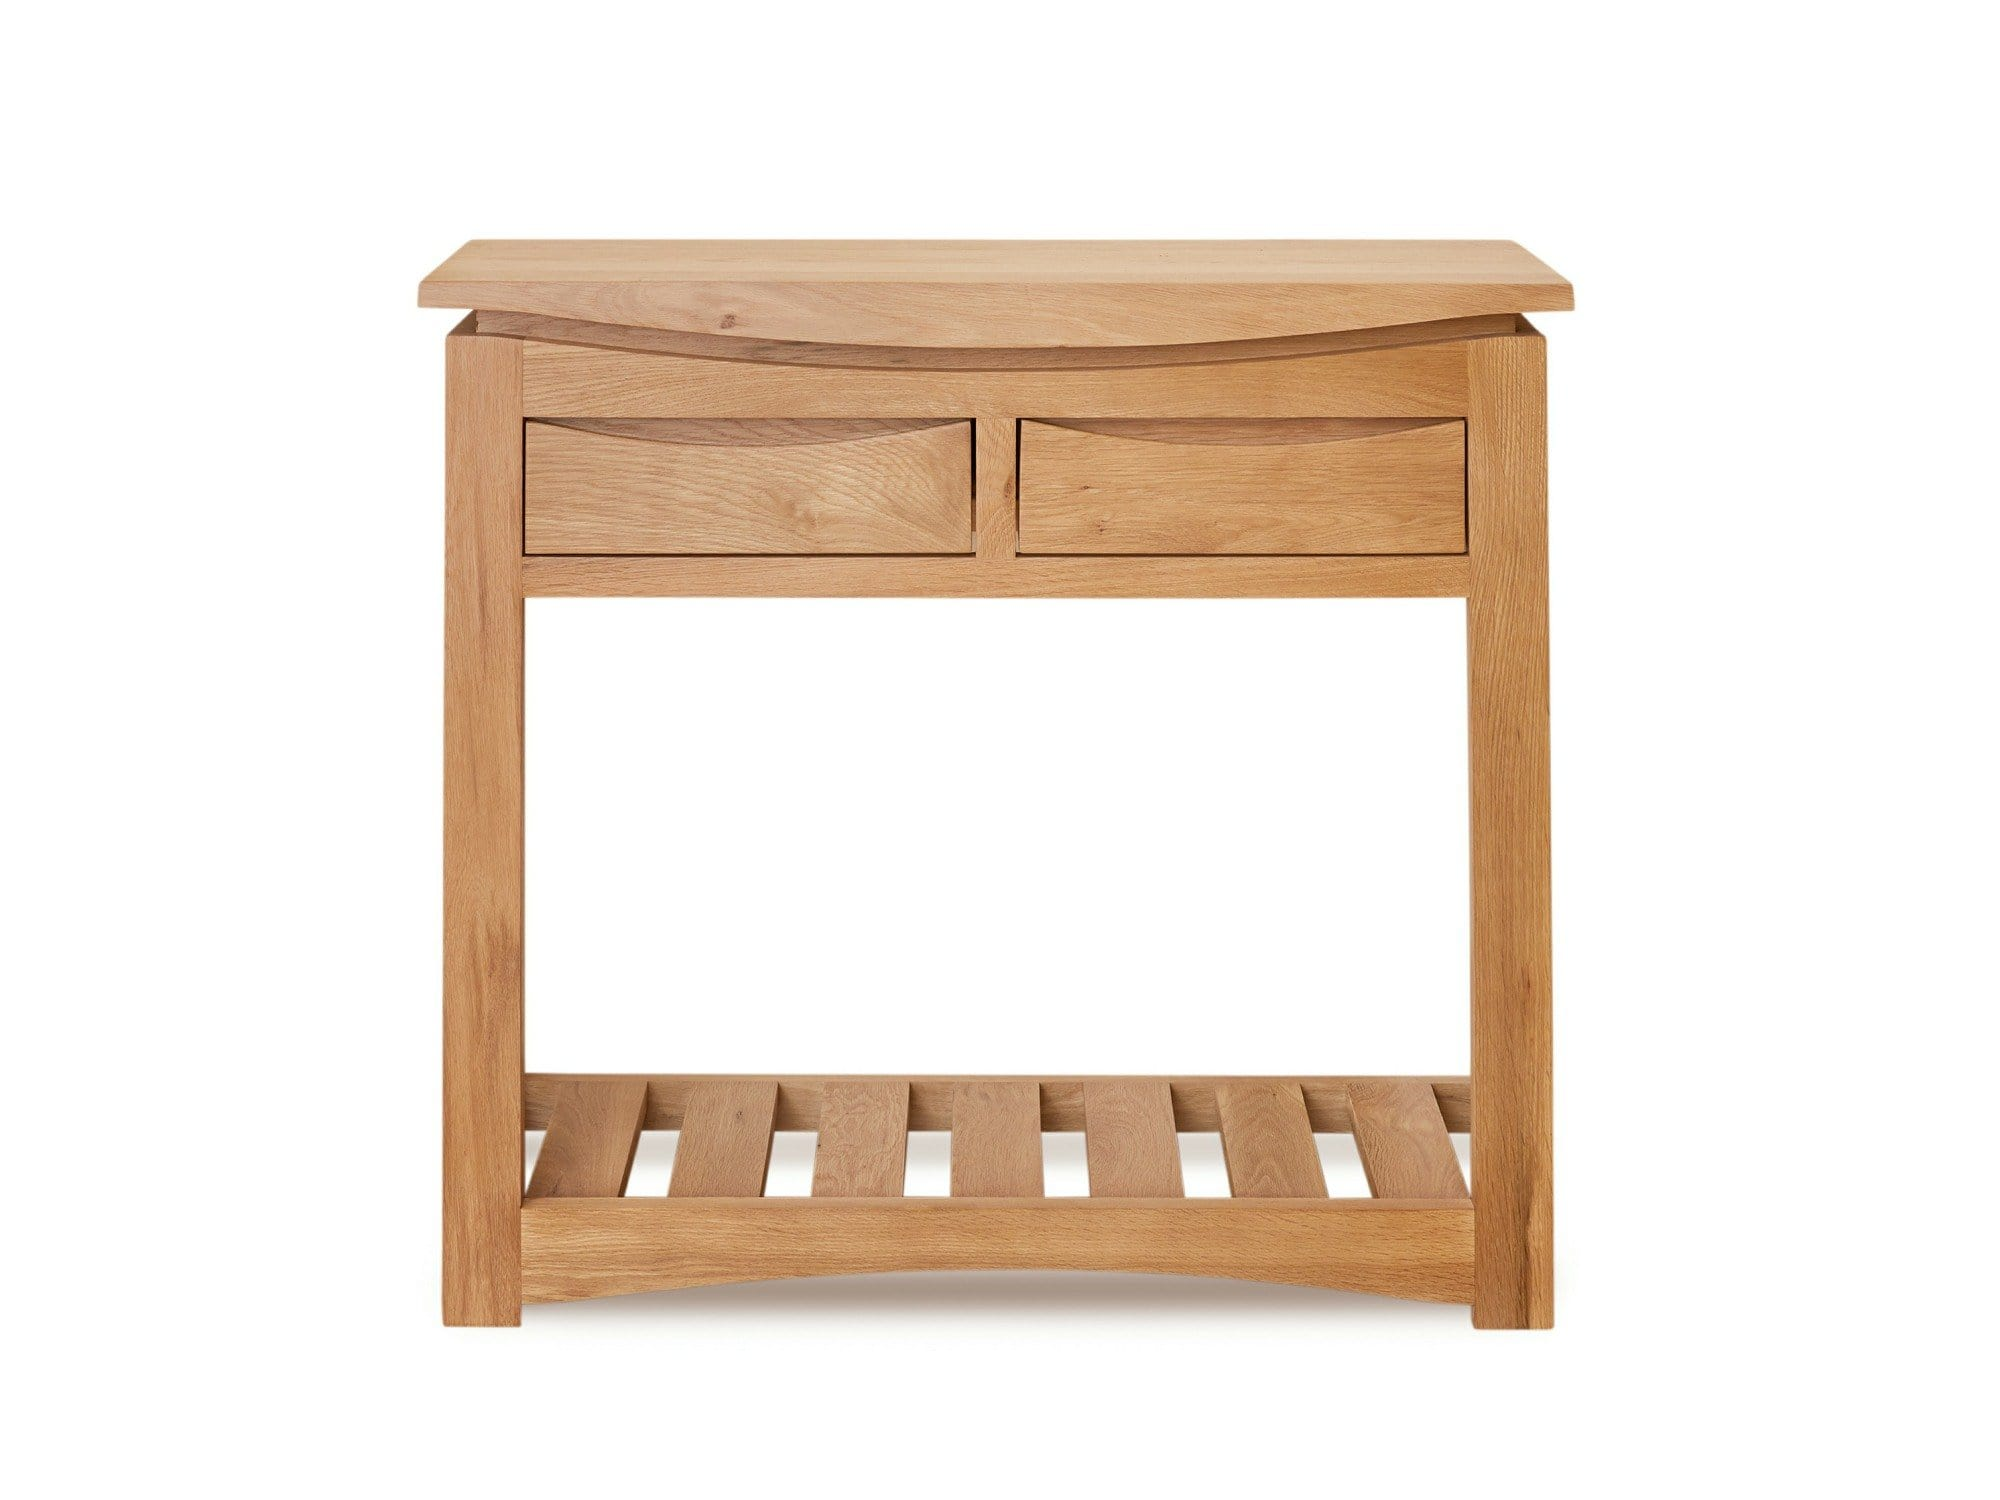 Allbrook light oak console table with two drawers plus undershelf